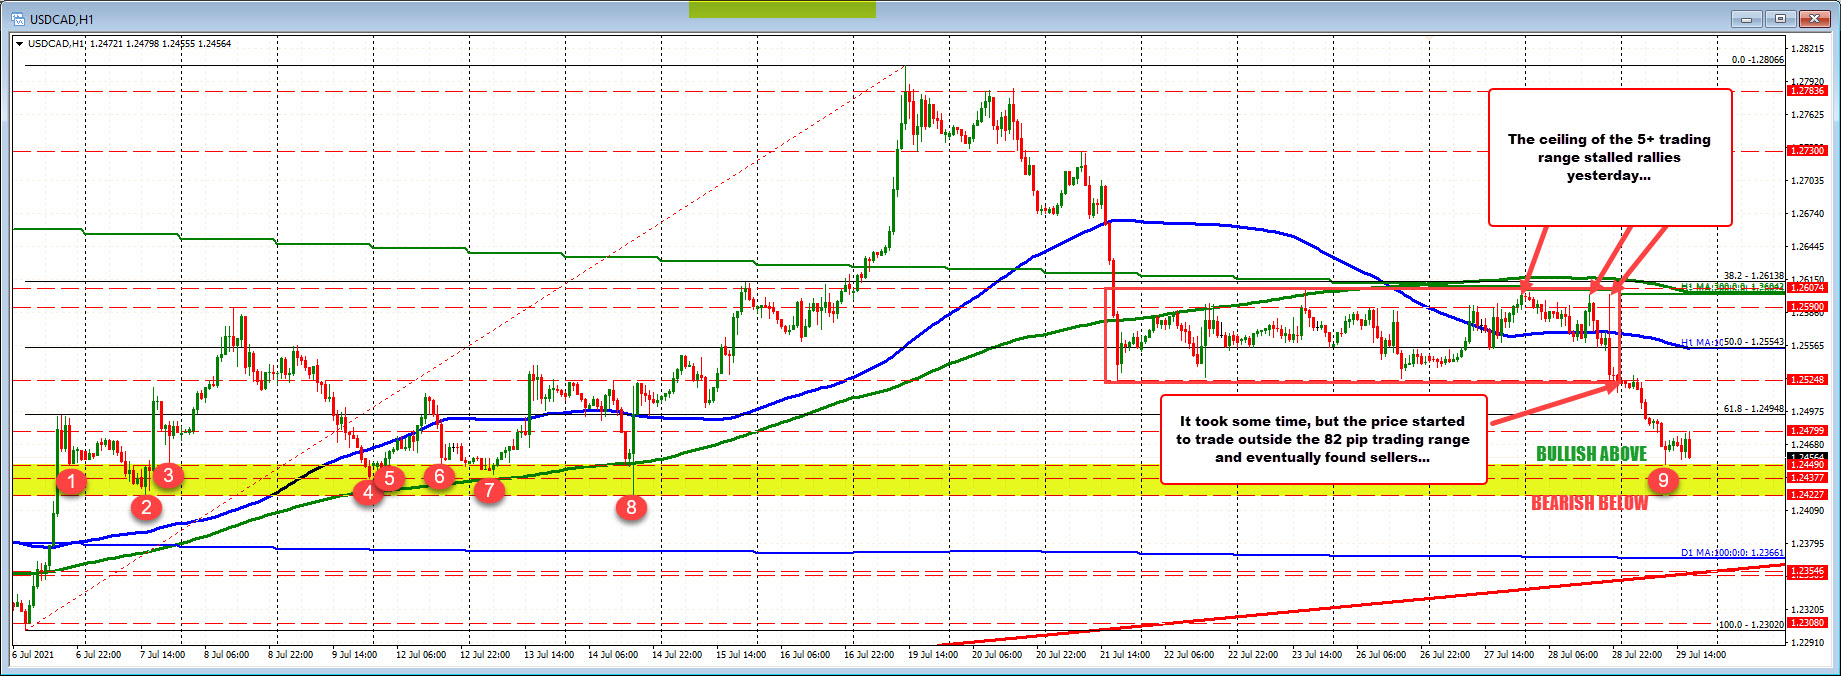 Extends the 82 pips trading range